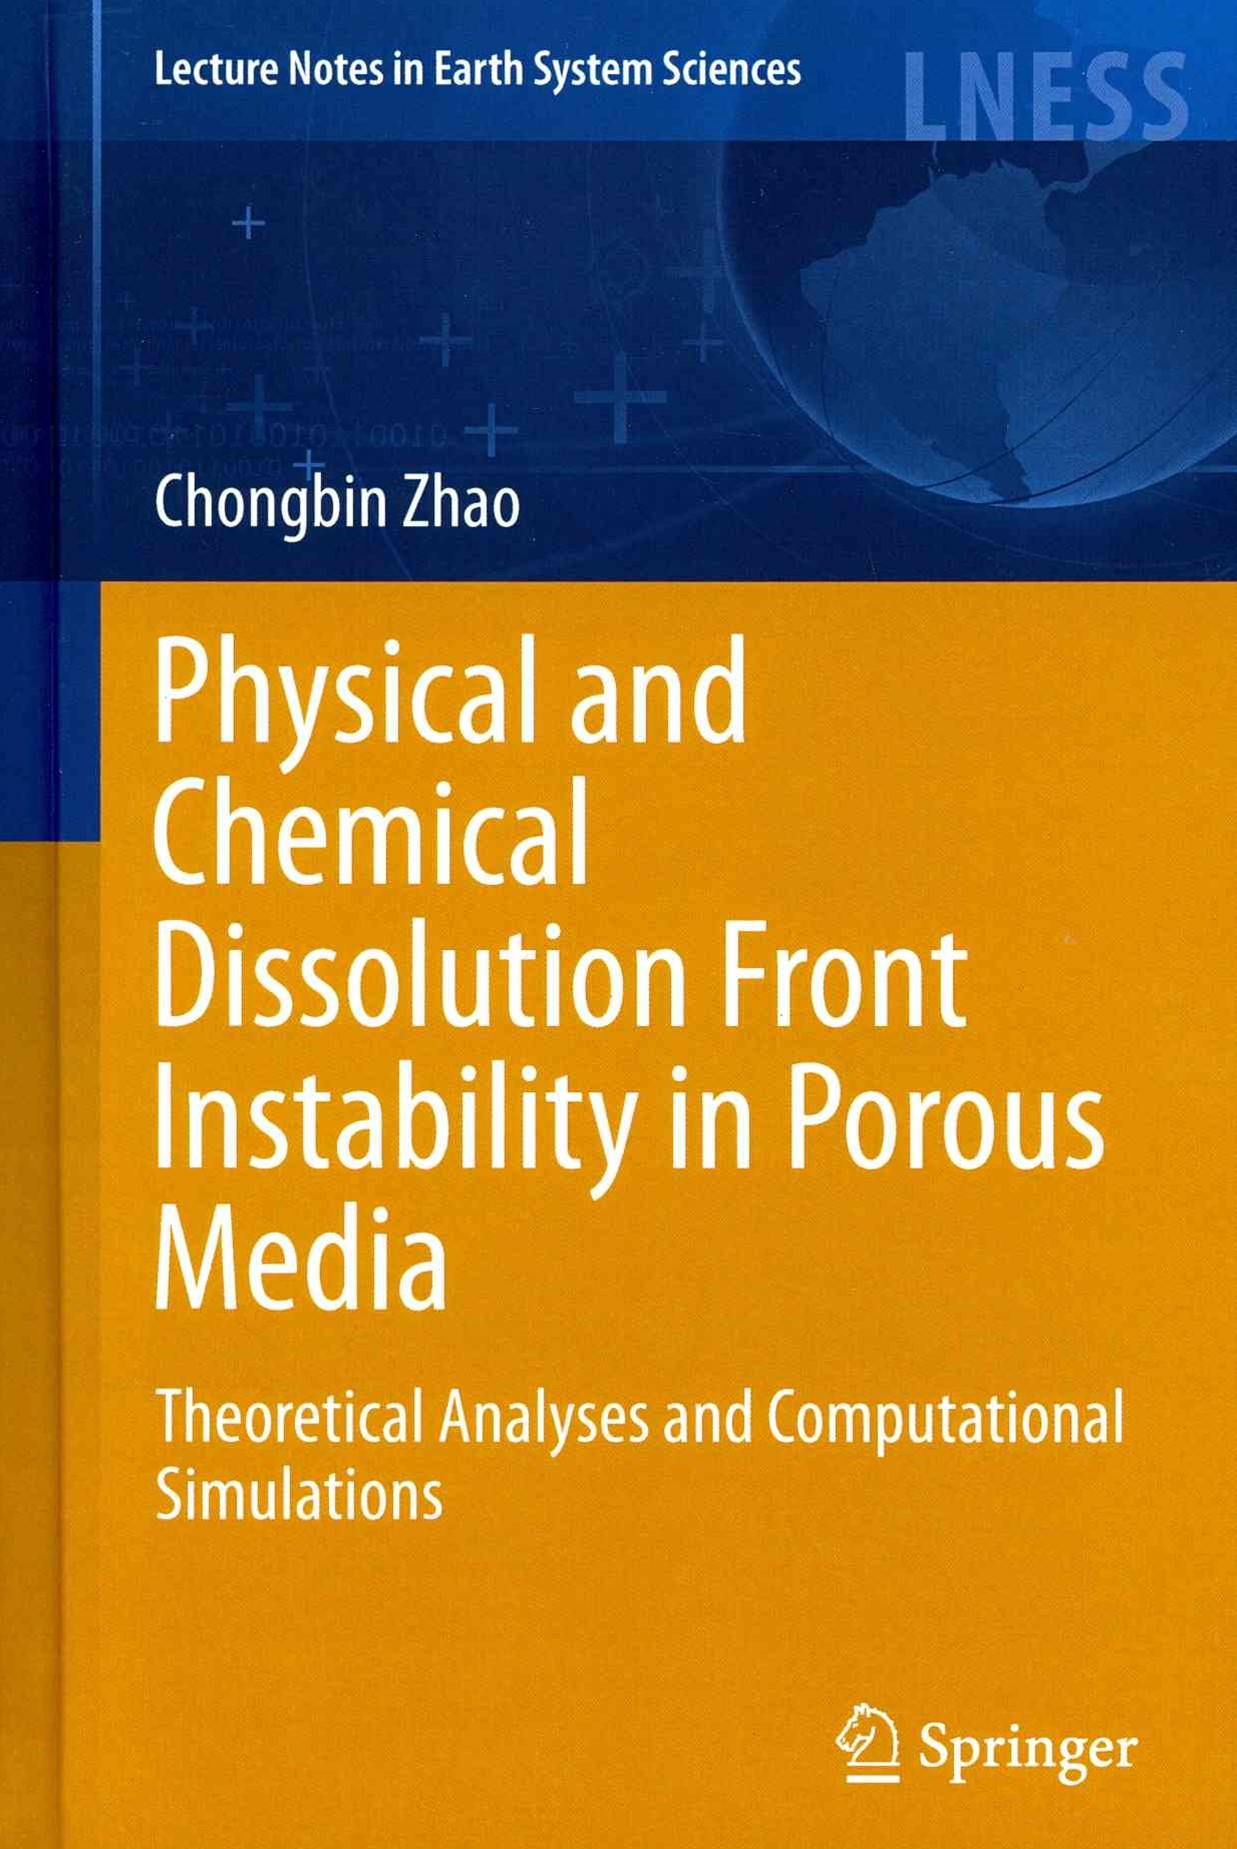 Physical and Chemical Dissolution Front Instability in Porous Media